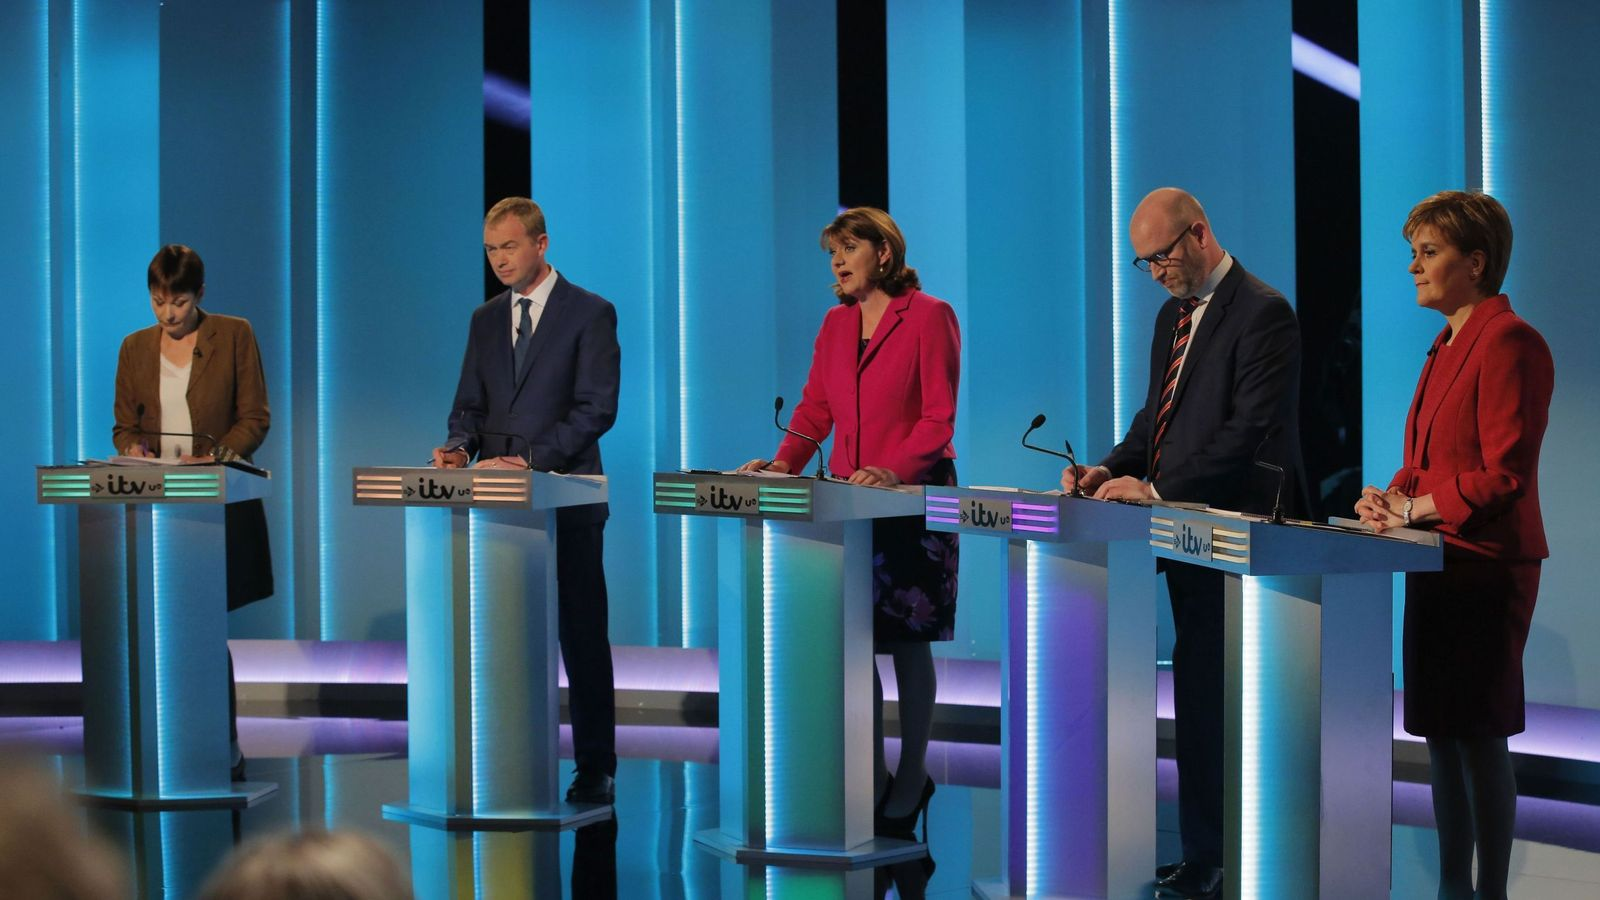 'Theresa May's spokesperson' Nicola Sturgeon HUMILIATES Paul Nuttall during live TV debate